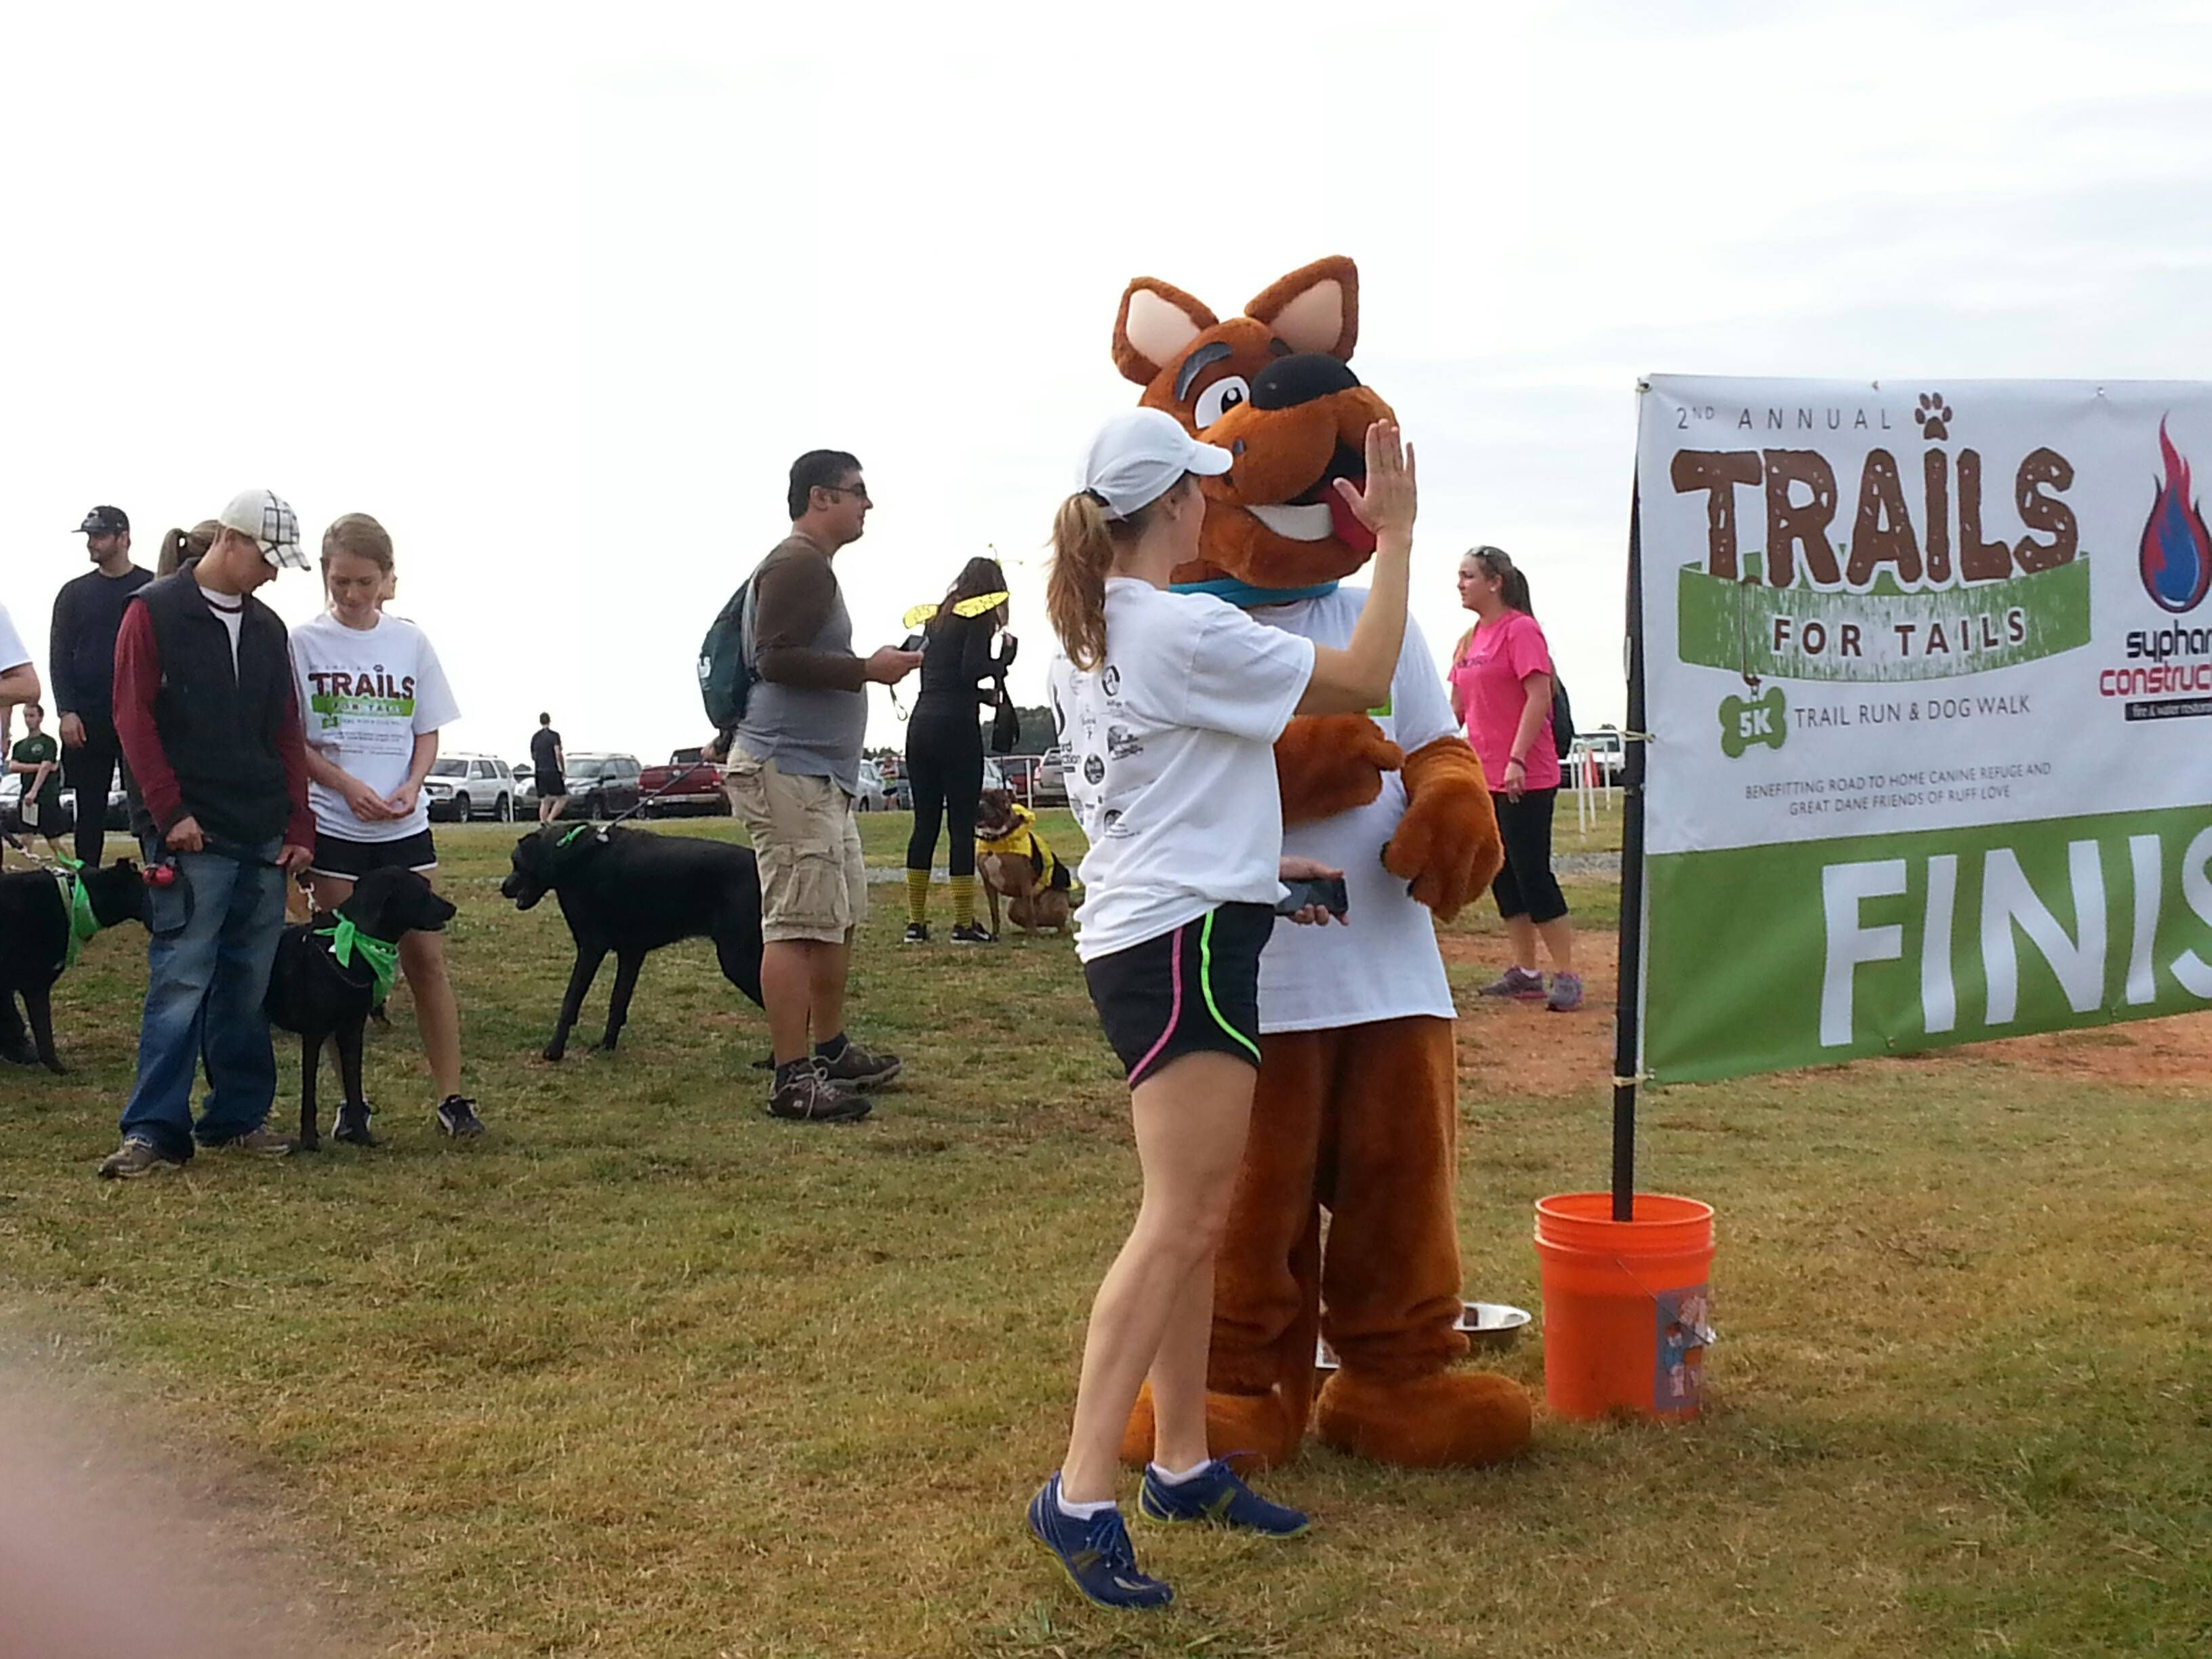 Scooby Getting Prepared For The Dog Walk At Trails For Tails Event